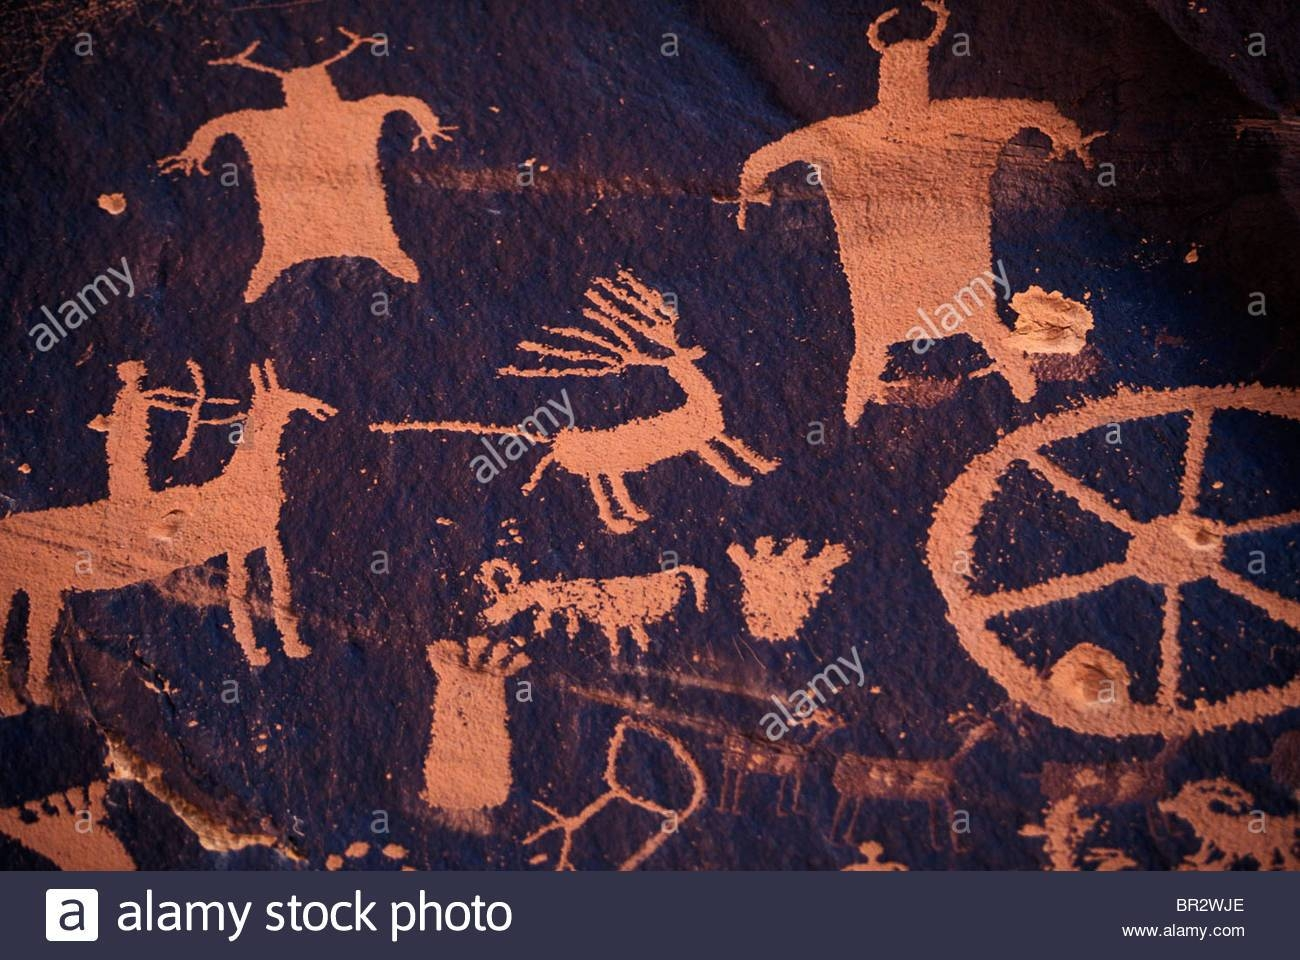 Native American Cave Art/wall Drawings Stock Photo, Royalty Free In Newest Native American Wall Art (View 16 of 25)